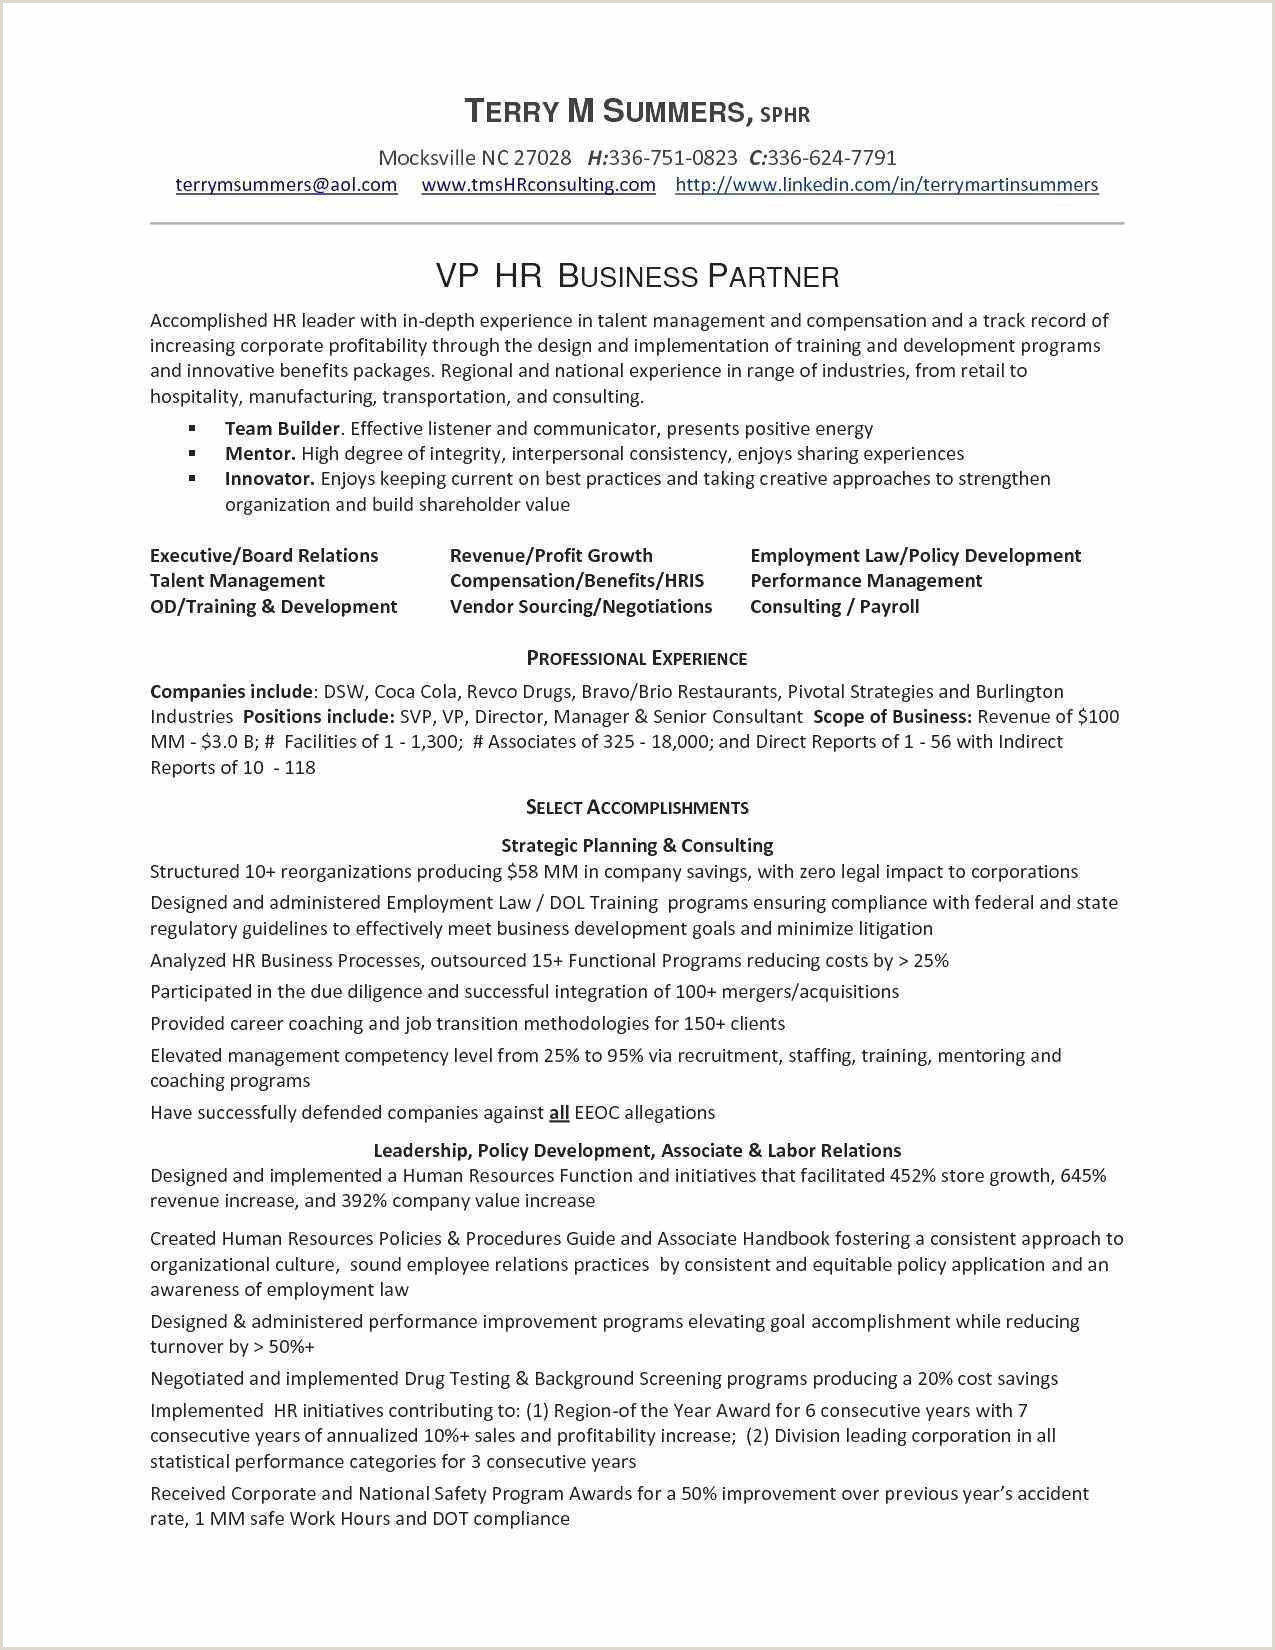 Unique Account Manager Cover Letter — Kenbachor Kenbachor